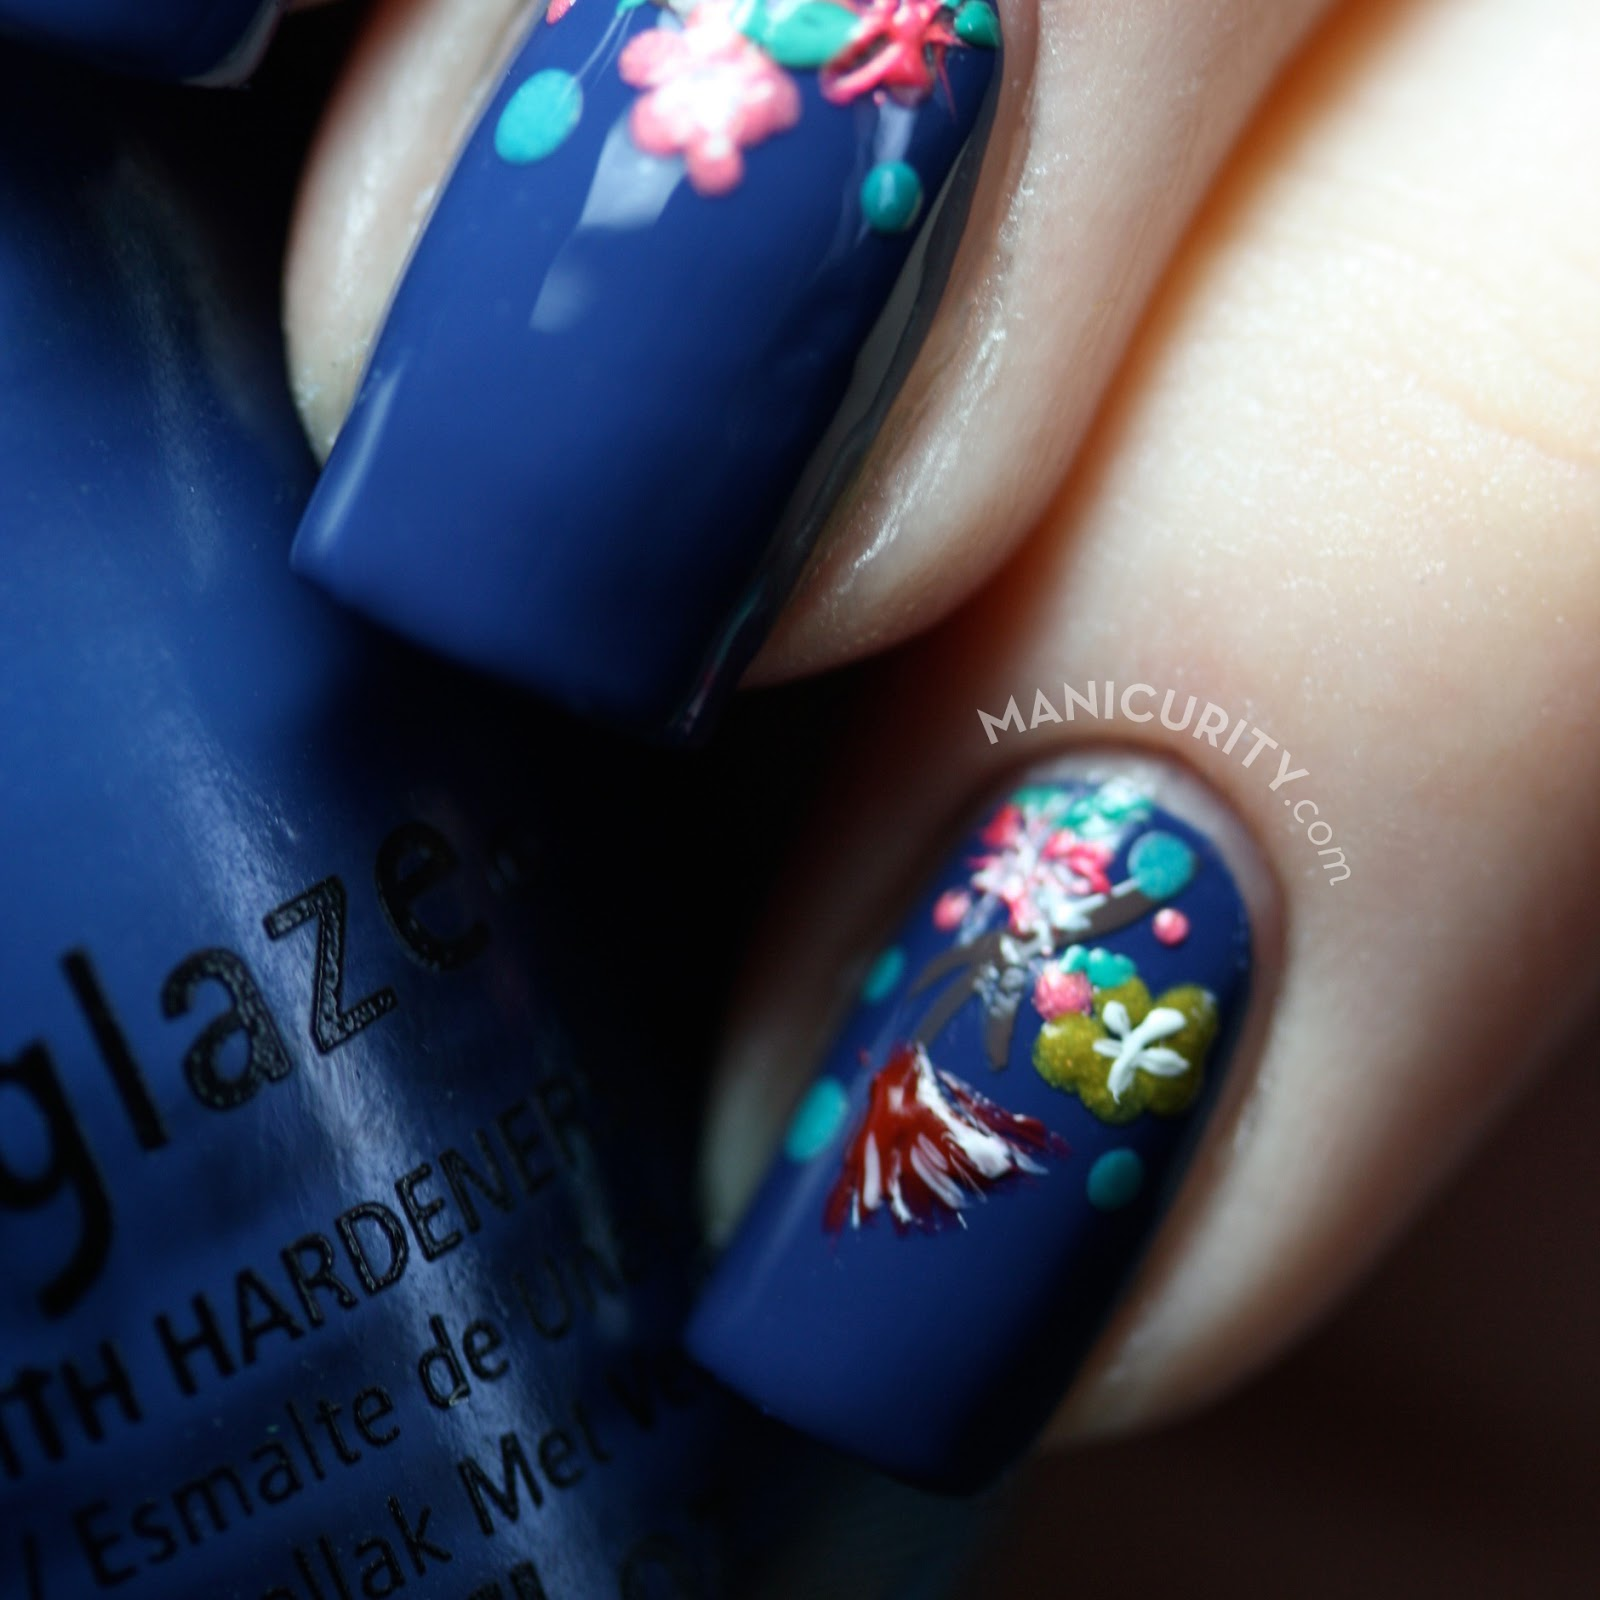 Manicurity.com | Teeny Tiny Flowery Half-Moon Nails - small freehand floral nail art using all China Glaze polishes